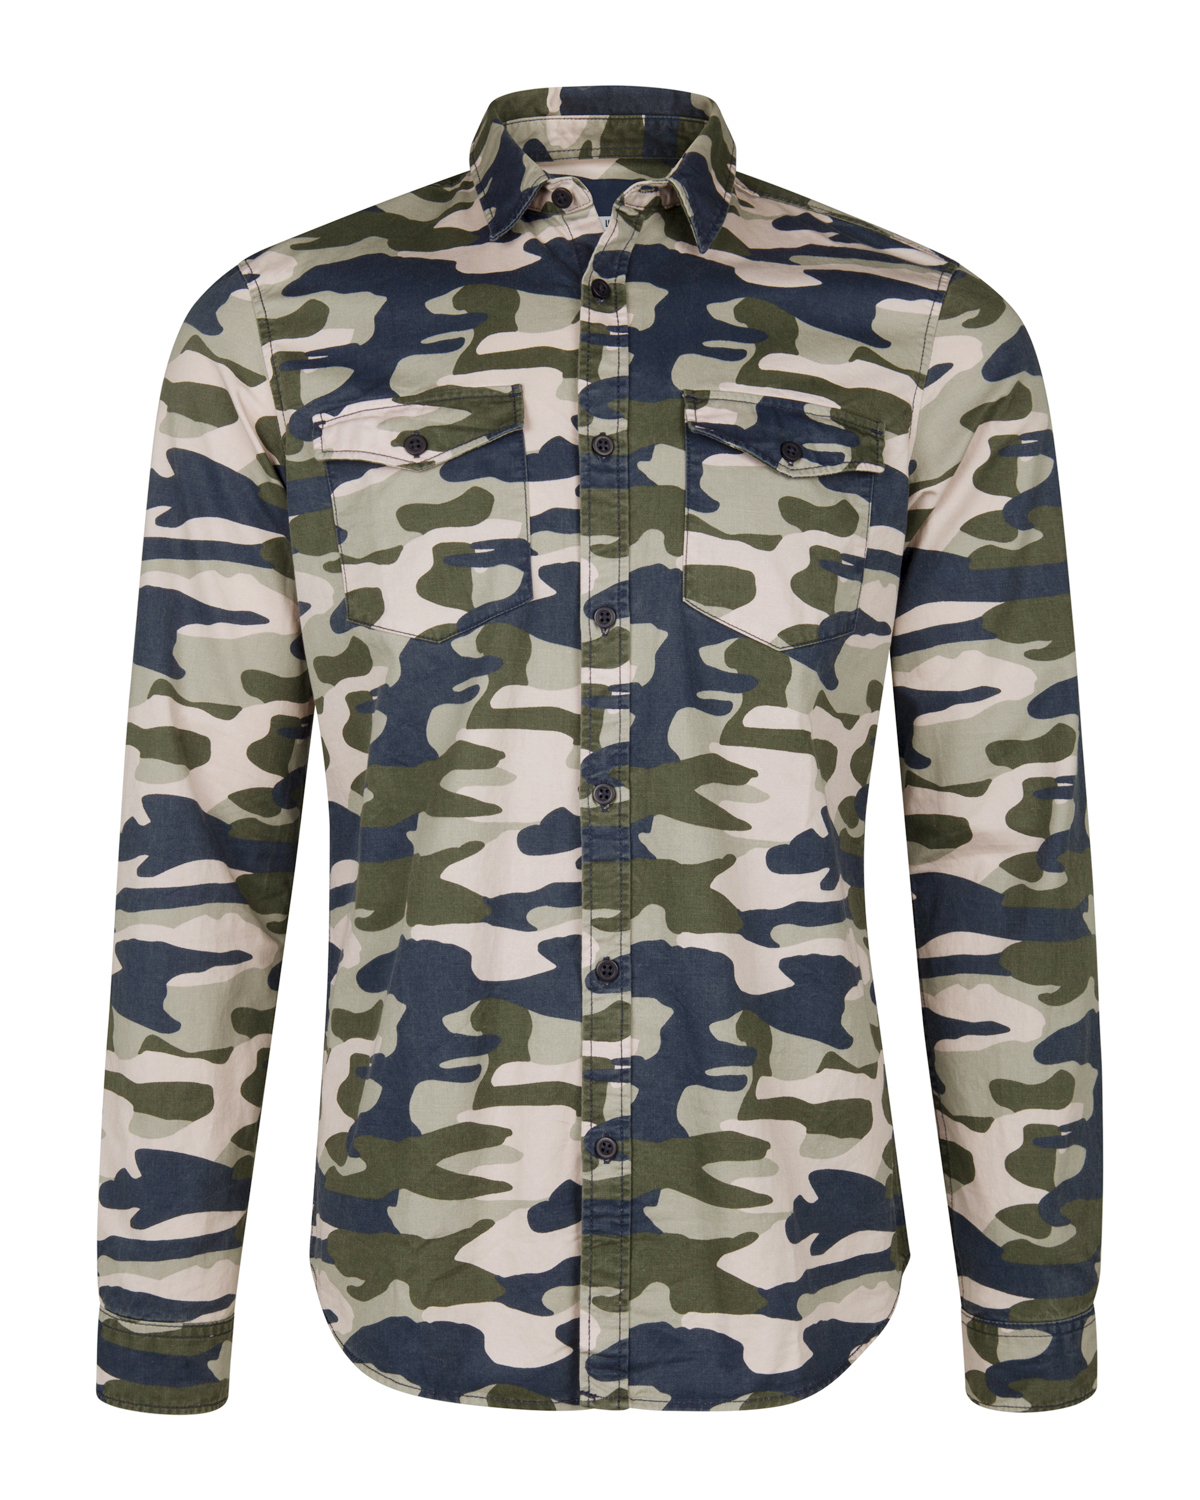 HERREN SLIM FIT HEMD MIT CAMOUFLAGE MUSTER | 85263741 WE Fashion